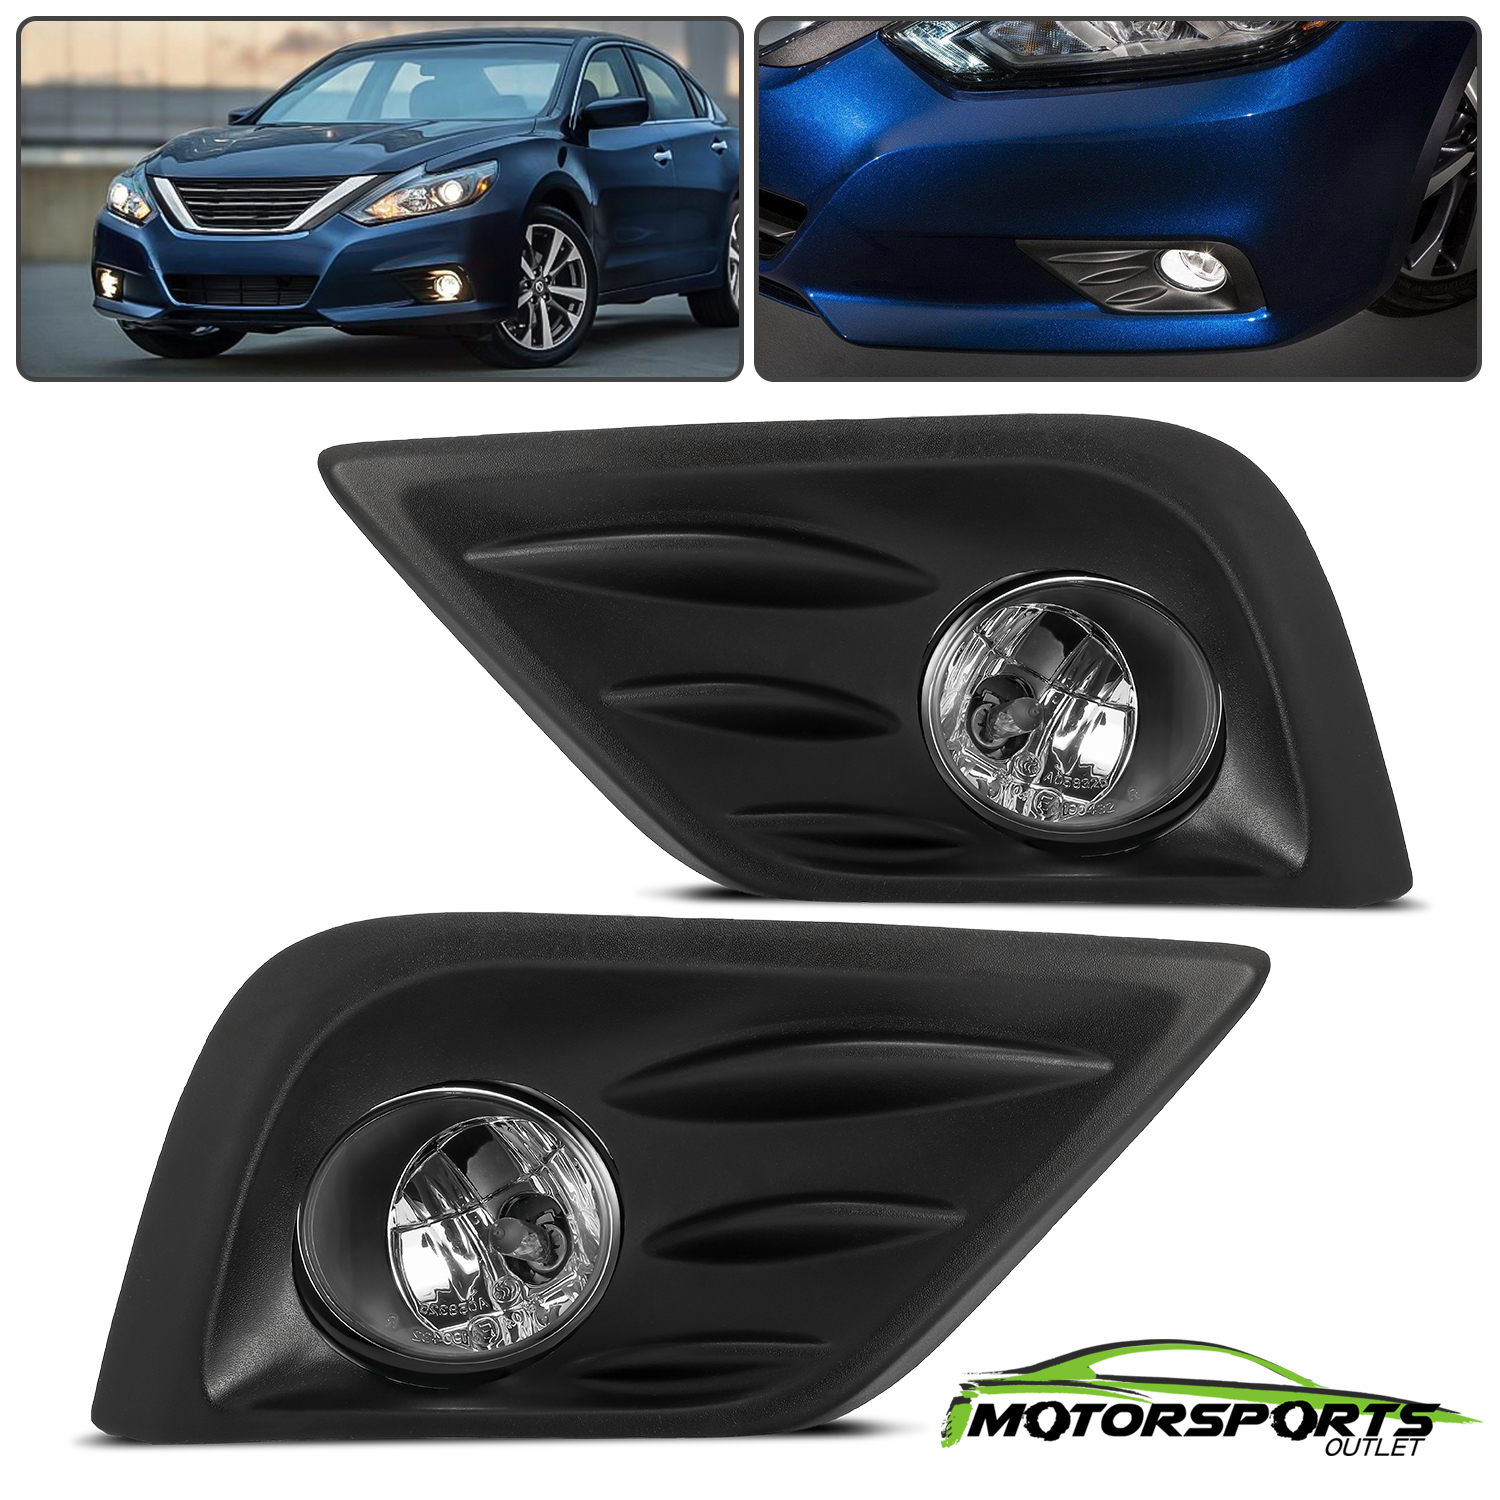 Details about For 2016 2017 Nissan Altima Bumper Fog Lights Pair+Switch+Bulbs+Wiring on